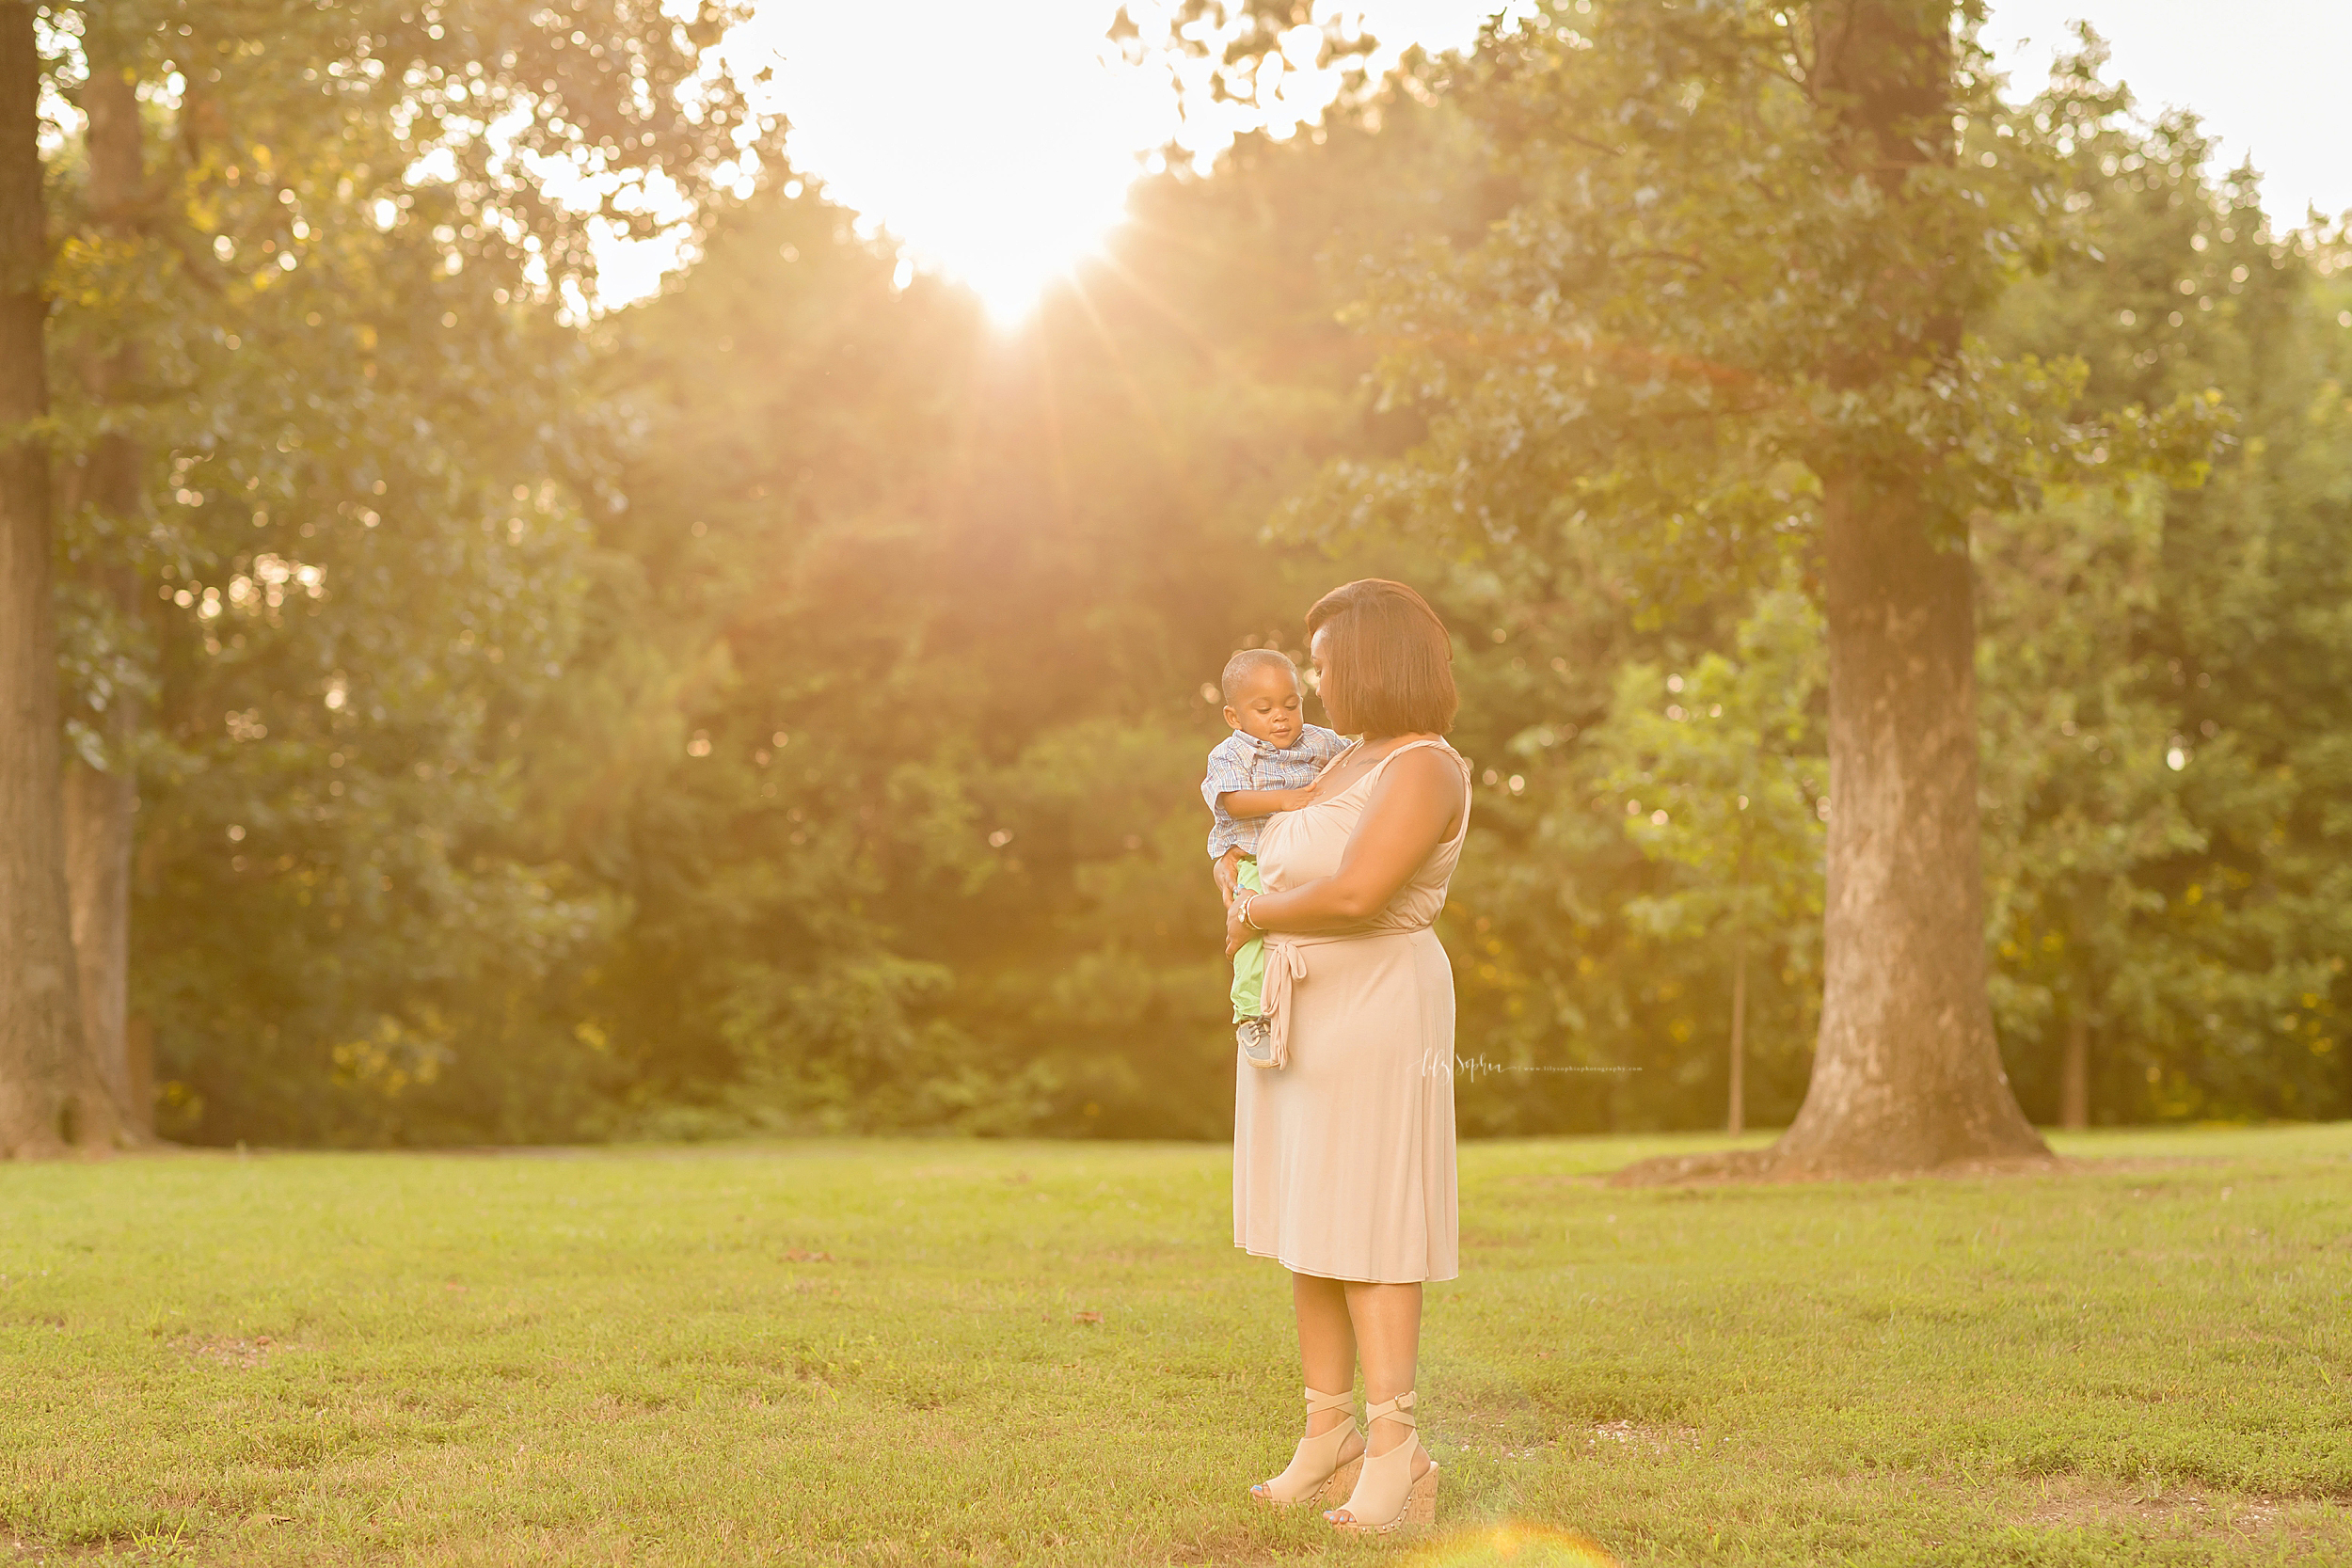 atlanta-hapeville-brookhaven-alpharetta-virginia-highlands-smyrna-decatur-lily-sophia-photography-outdoor-family-mother-toddler-son-second-birthday-park-sunset-pictures_0706.jpg